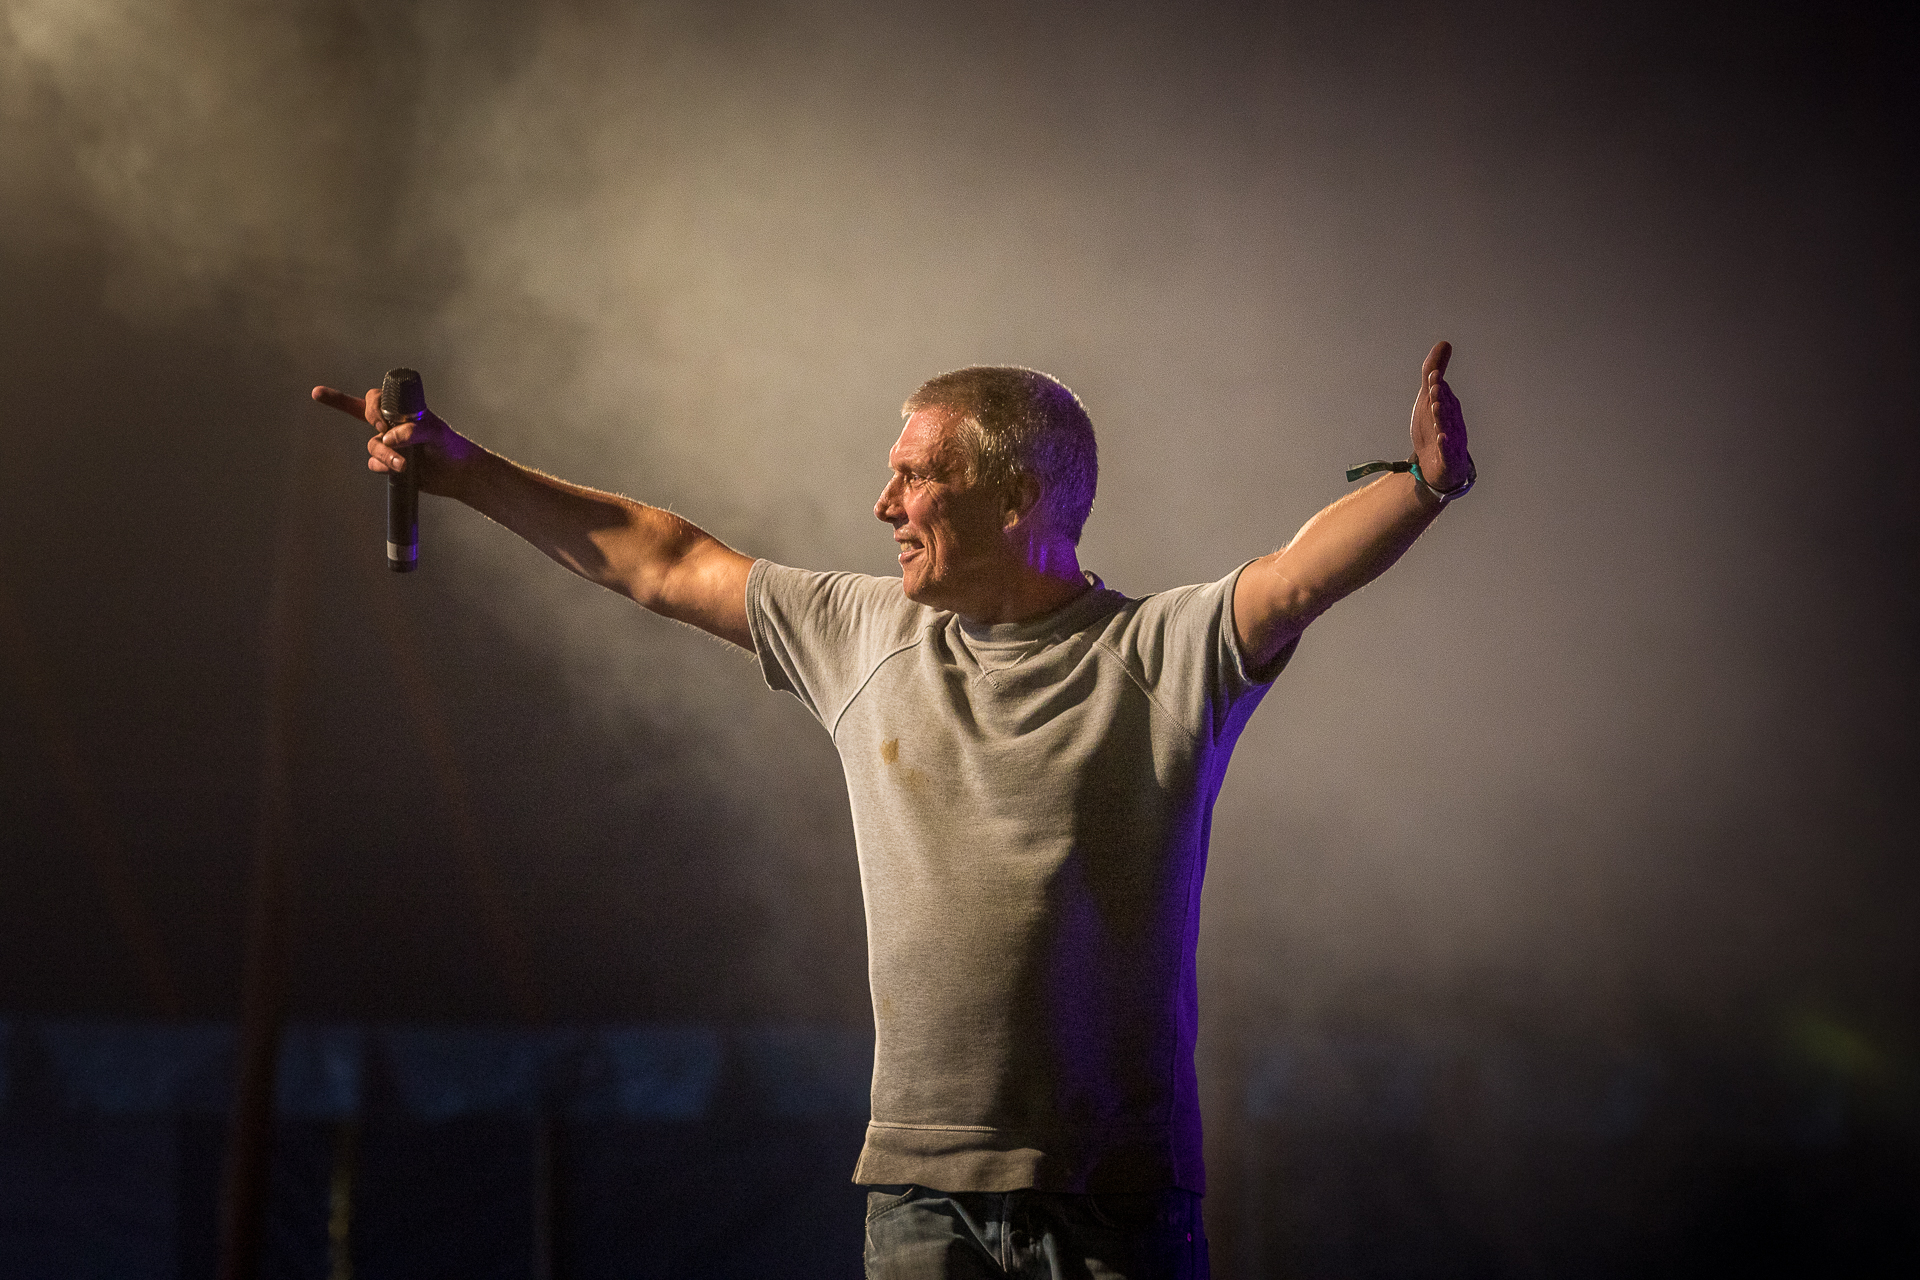 A smiling Bez on stage, arms outstretched, performing as a solo artist at Lakefest 2019.